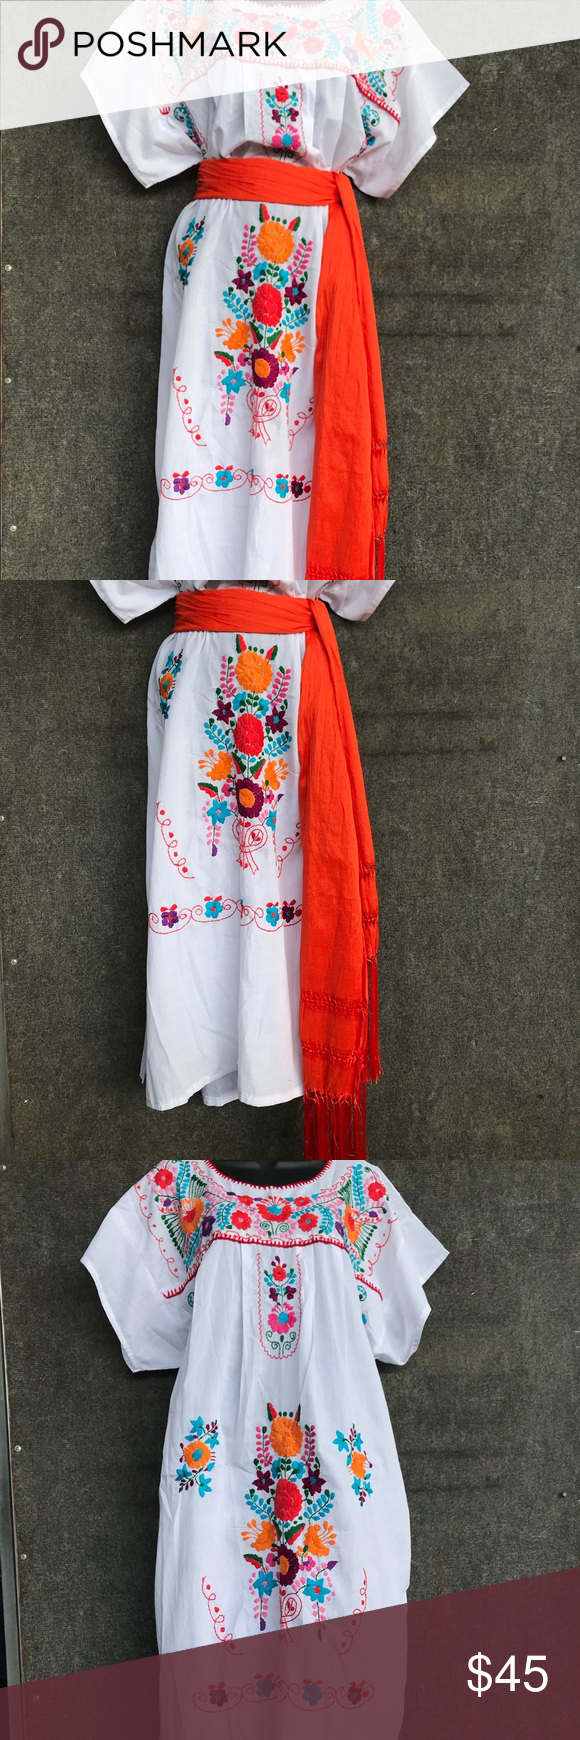 Embroided dress Size L/Xl made in Mexico orange shall not included color white Dresses Midi